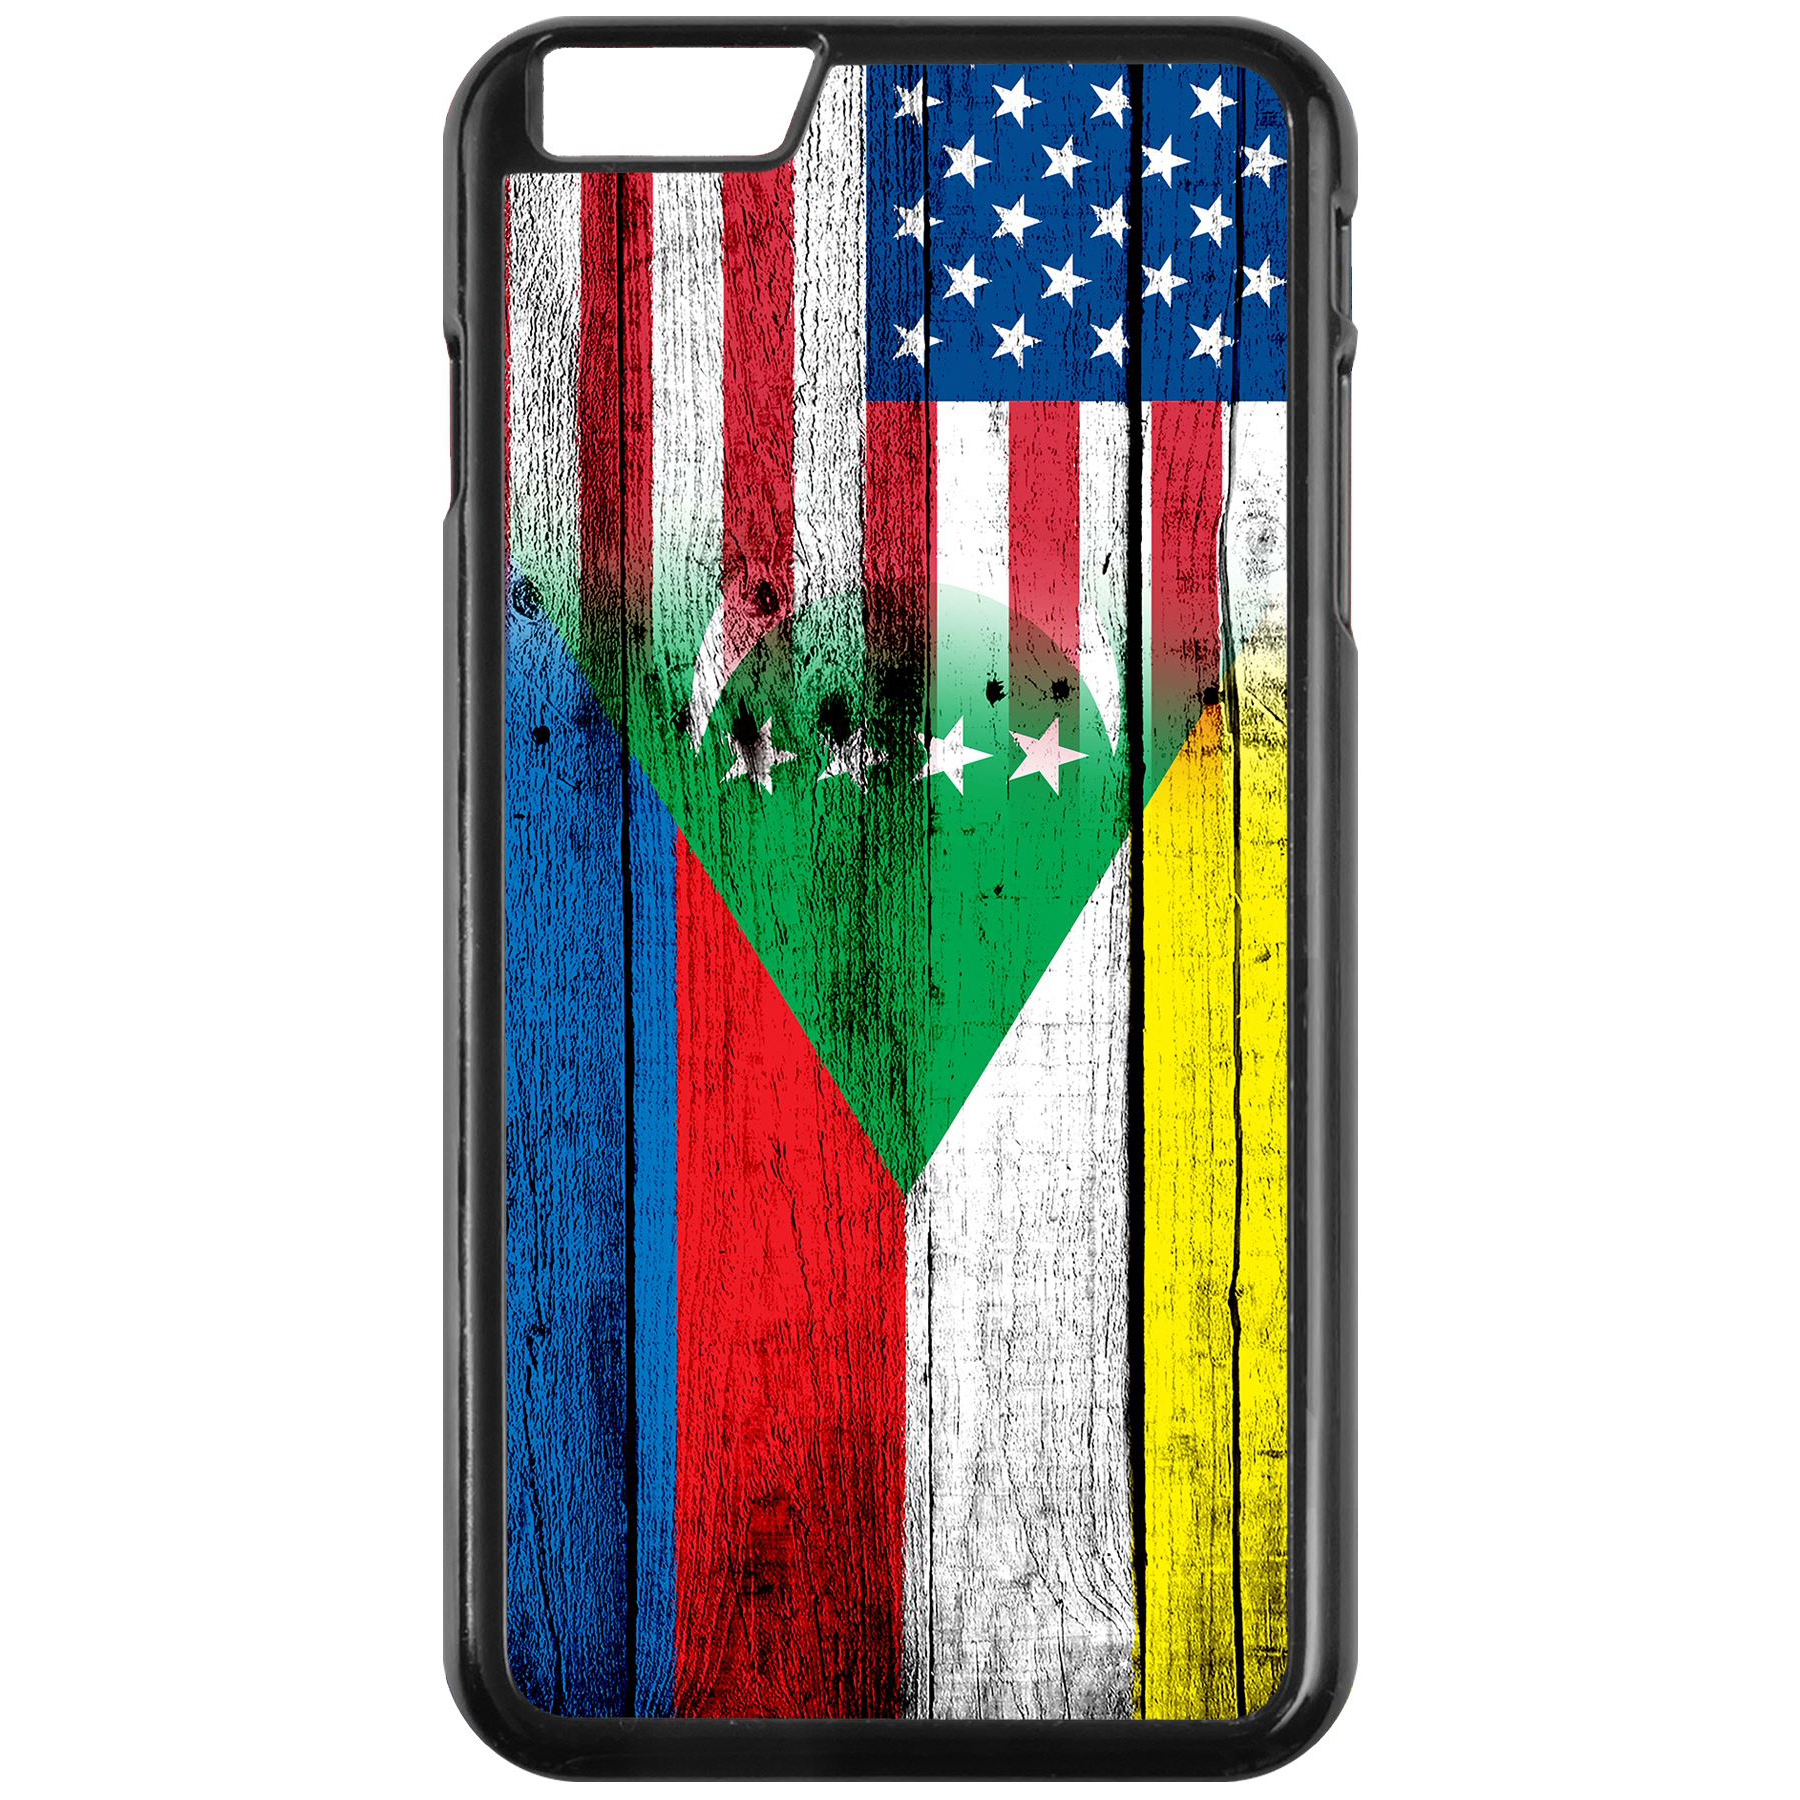 Apple-iPhone-Case-with-Flag-of-Comoros-Comorian-Many-Design-Options thumbnail 20